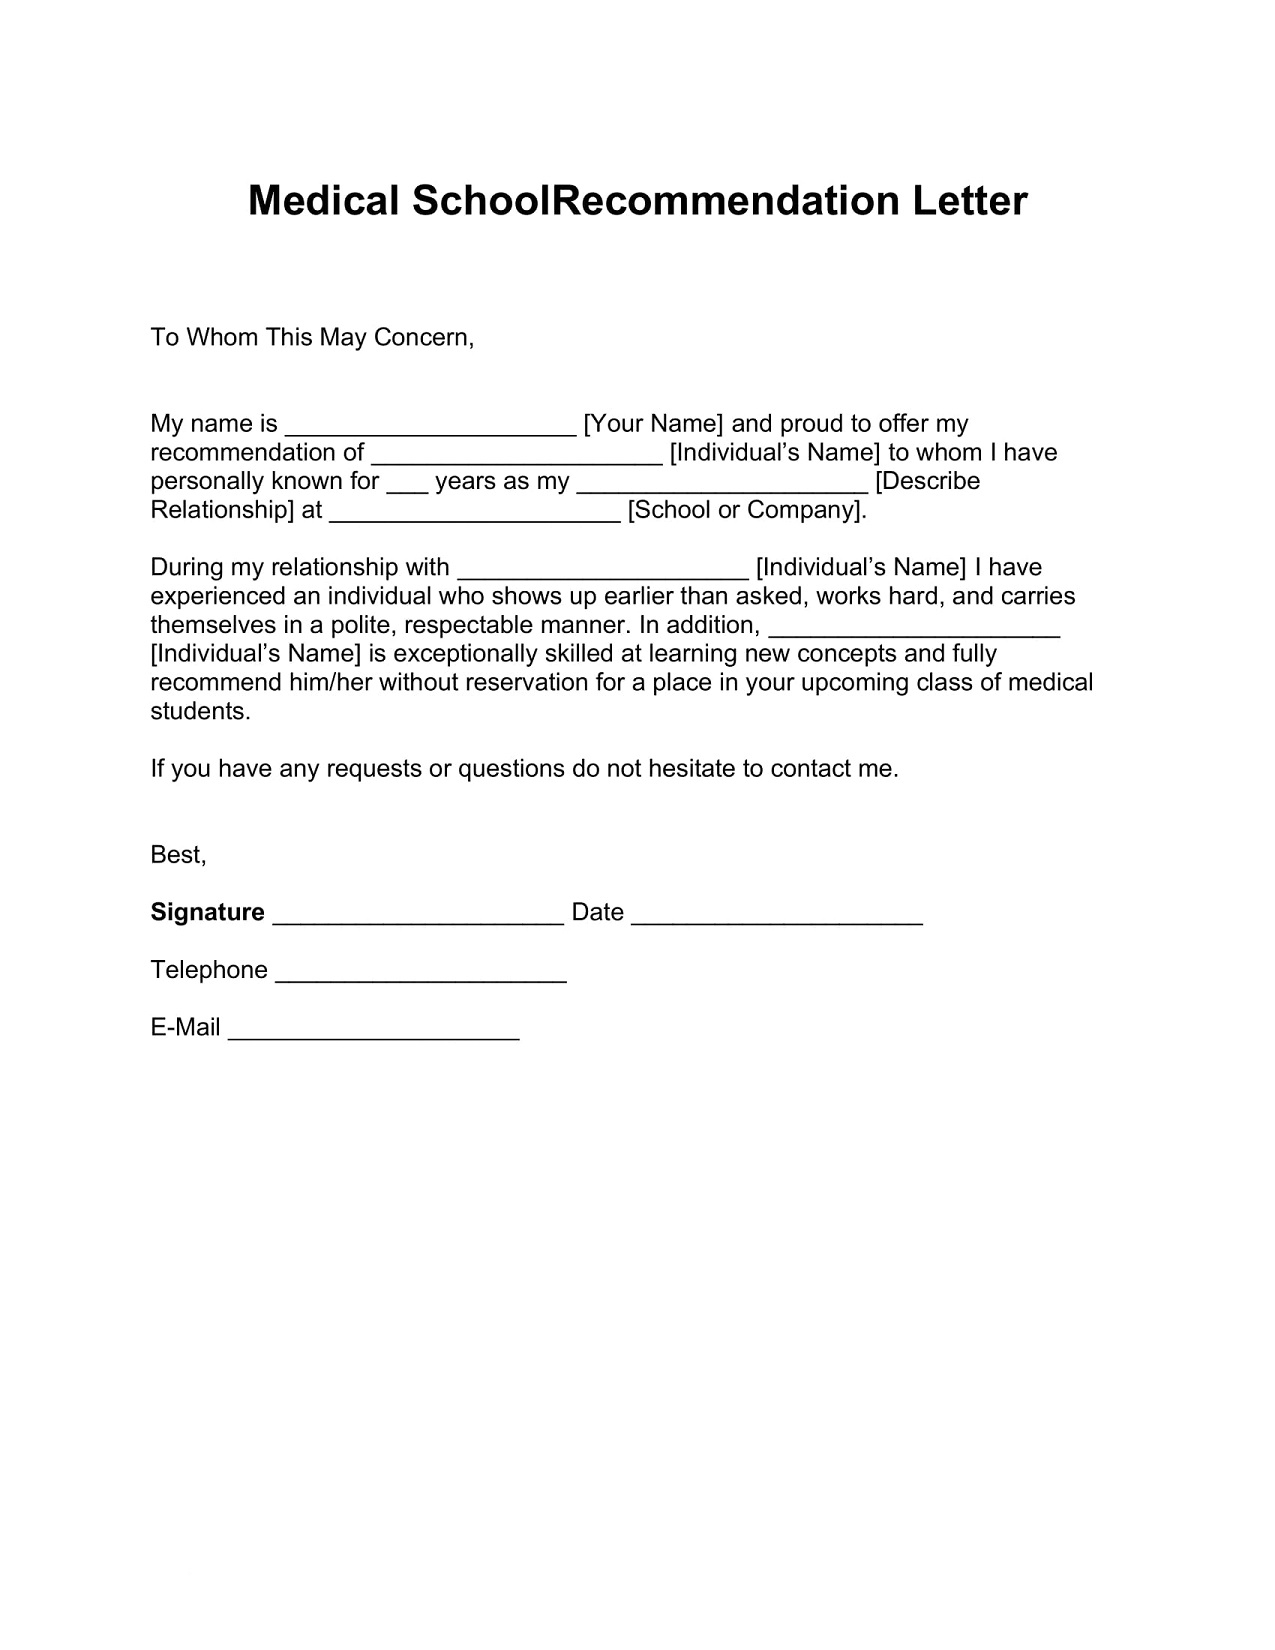 Medical School Recommendation Letter Word Form